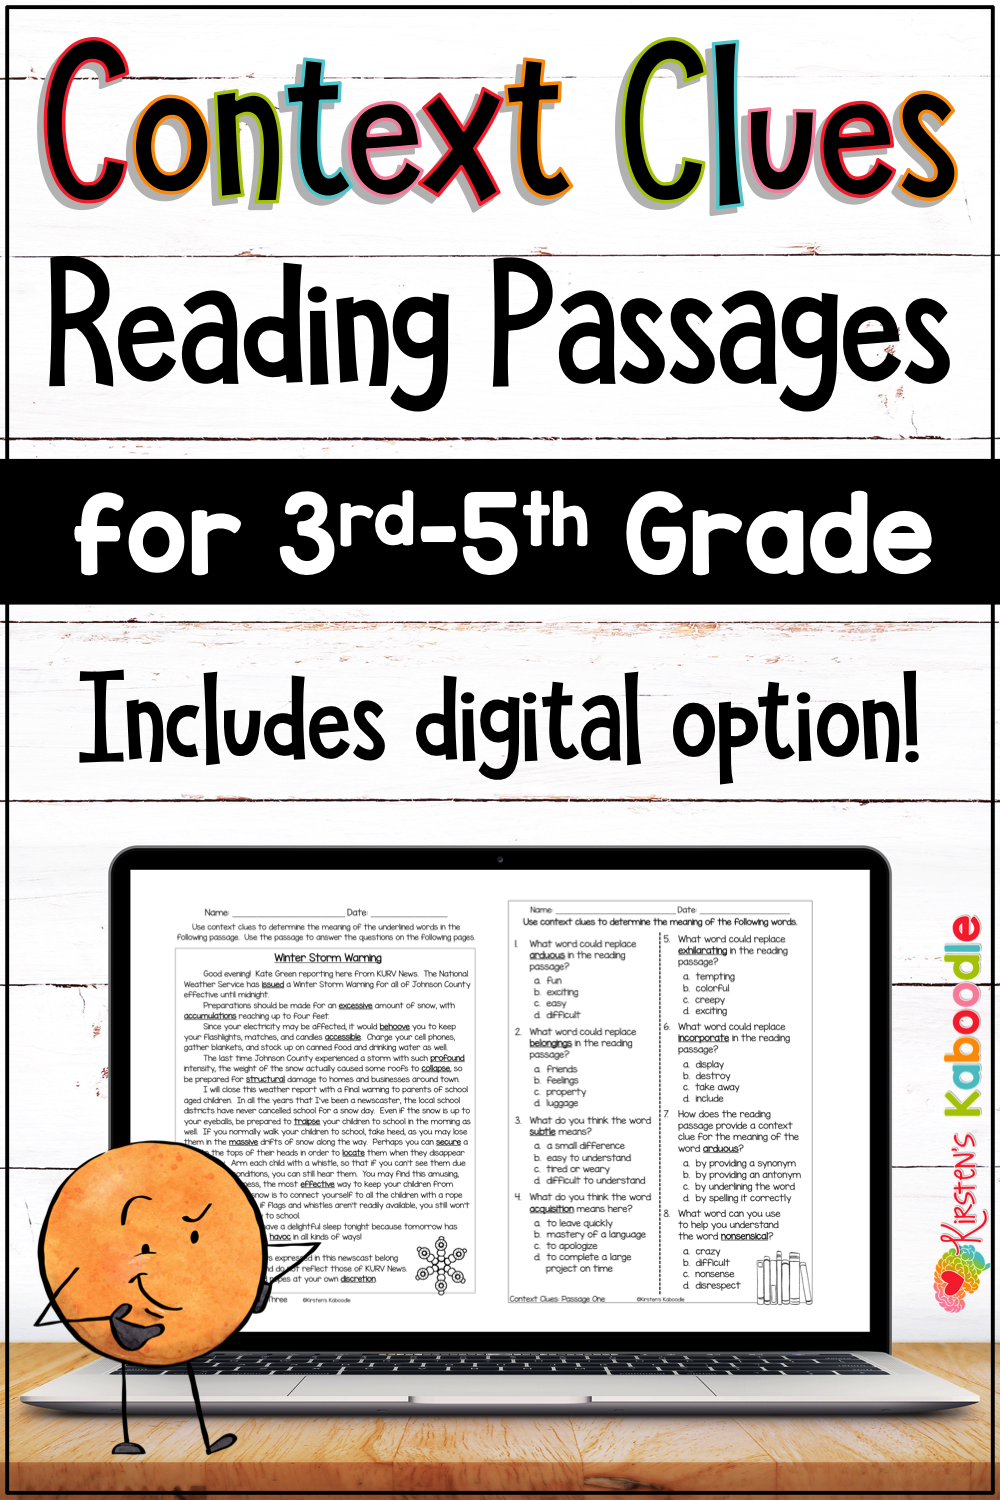 Context Clues Passages And Activities With Digital Option Context Clues Reading Passages Context Clues Worksheets [ 1500 x 1000 Pixel ]